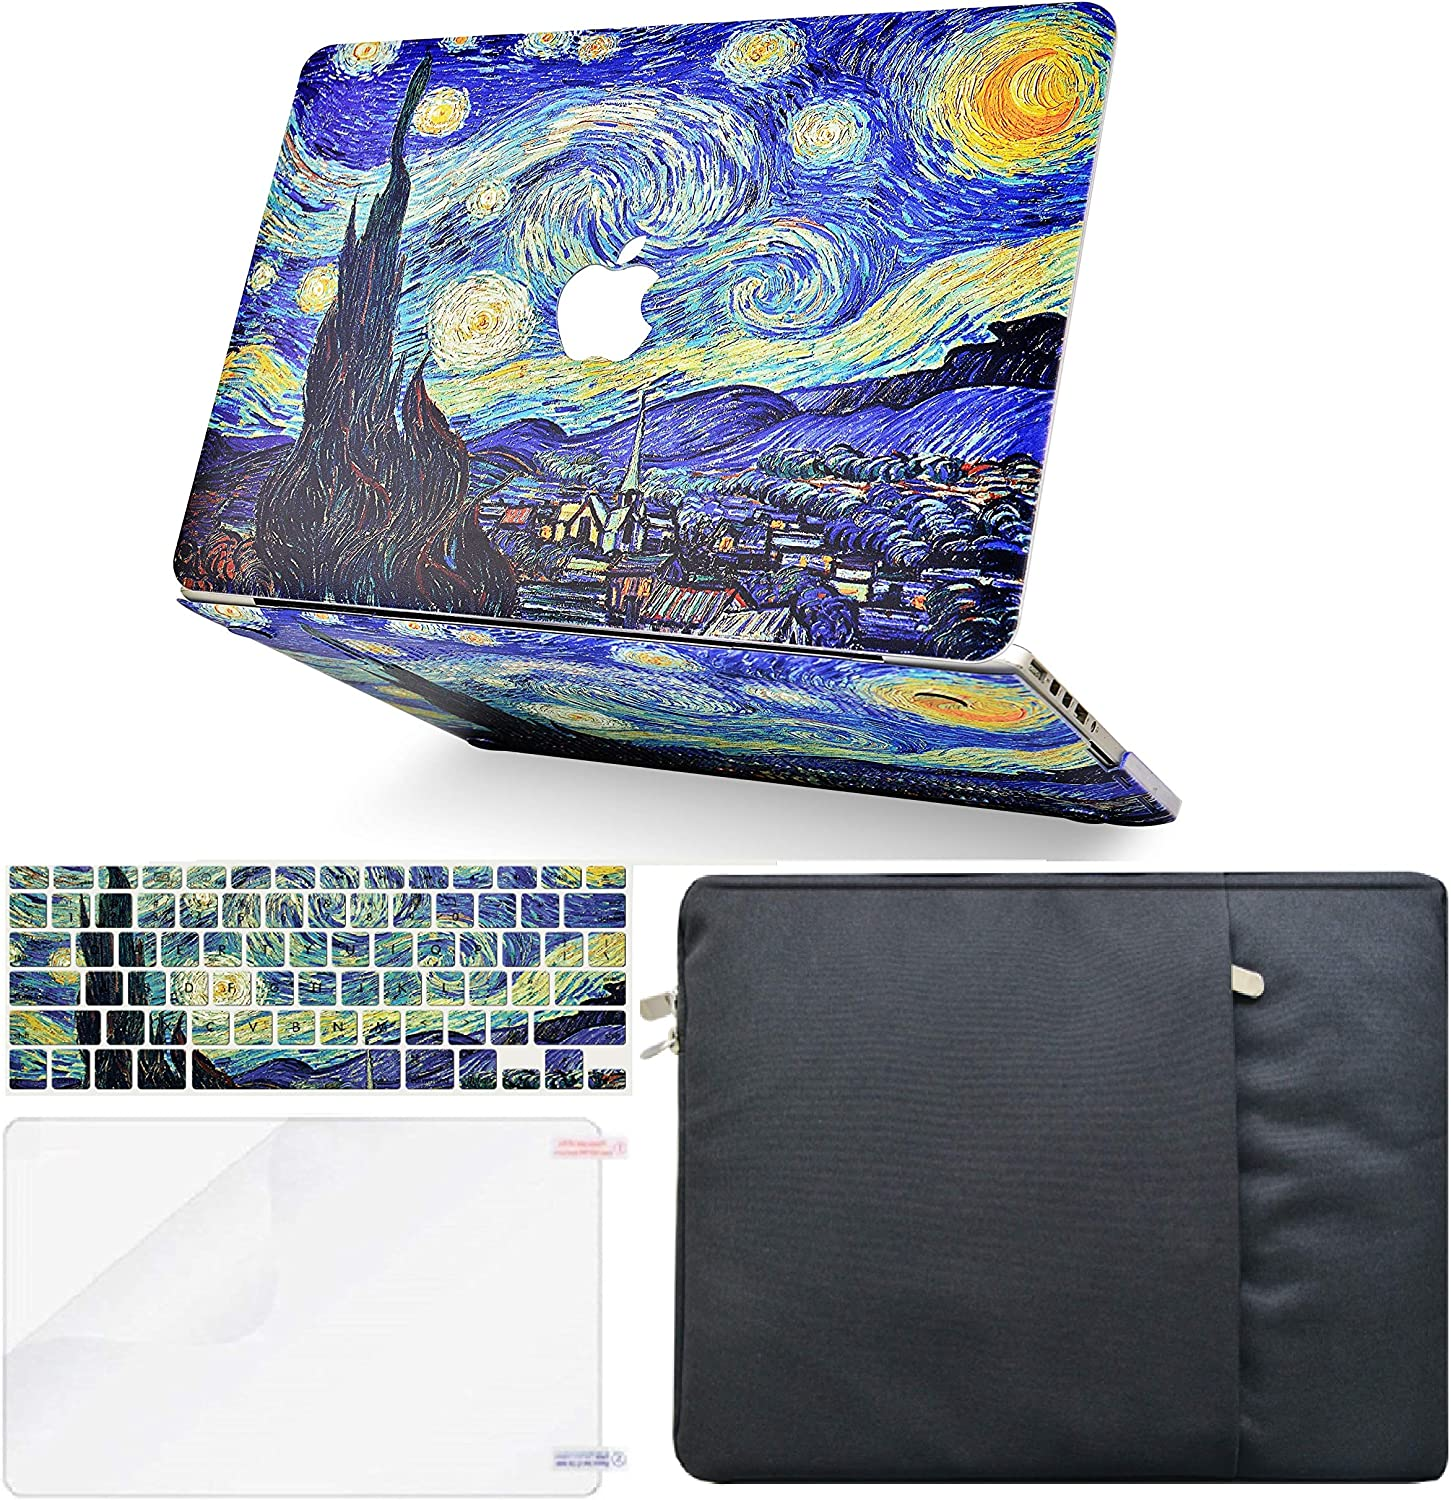 LuvCase 4 in 1 Laptop Case Compatible with MacBook New Air 13 Inch (2021/2020) A2337 M1/A2179 (Touch ID) Retina DisplayHardShellCover, Sleeve, Keyboard Cover & Screen Protector (Starry Night)